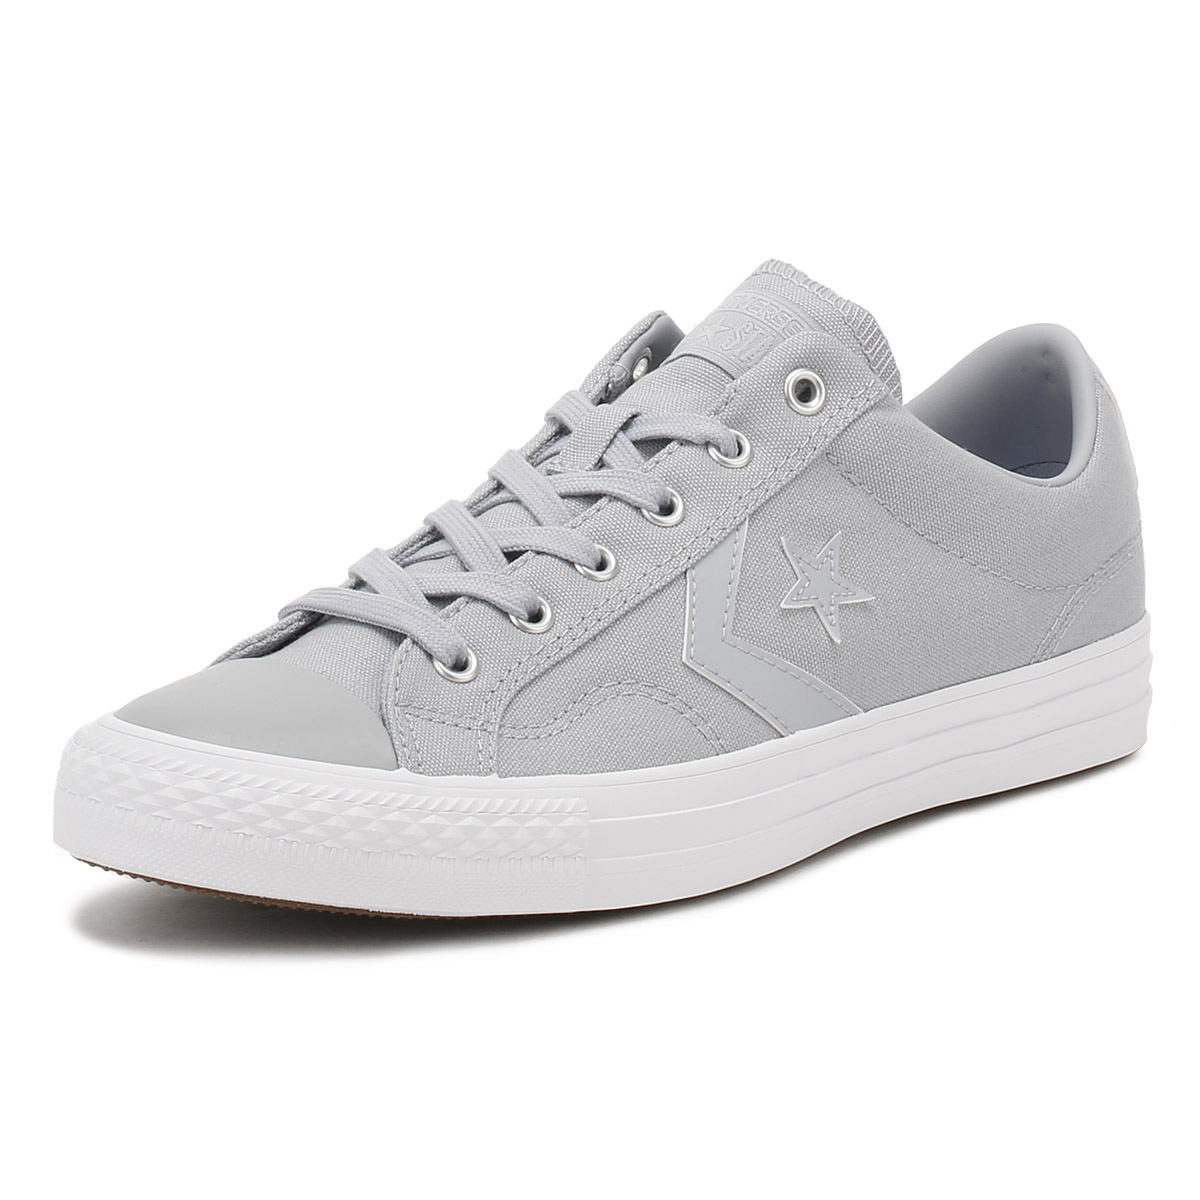 6a8fe8c70a3e ... ox suede 02a28 05c5b  best converse mens grey star player trainers  canvas casual aaa97 30481